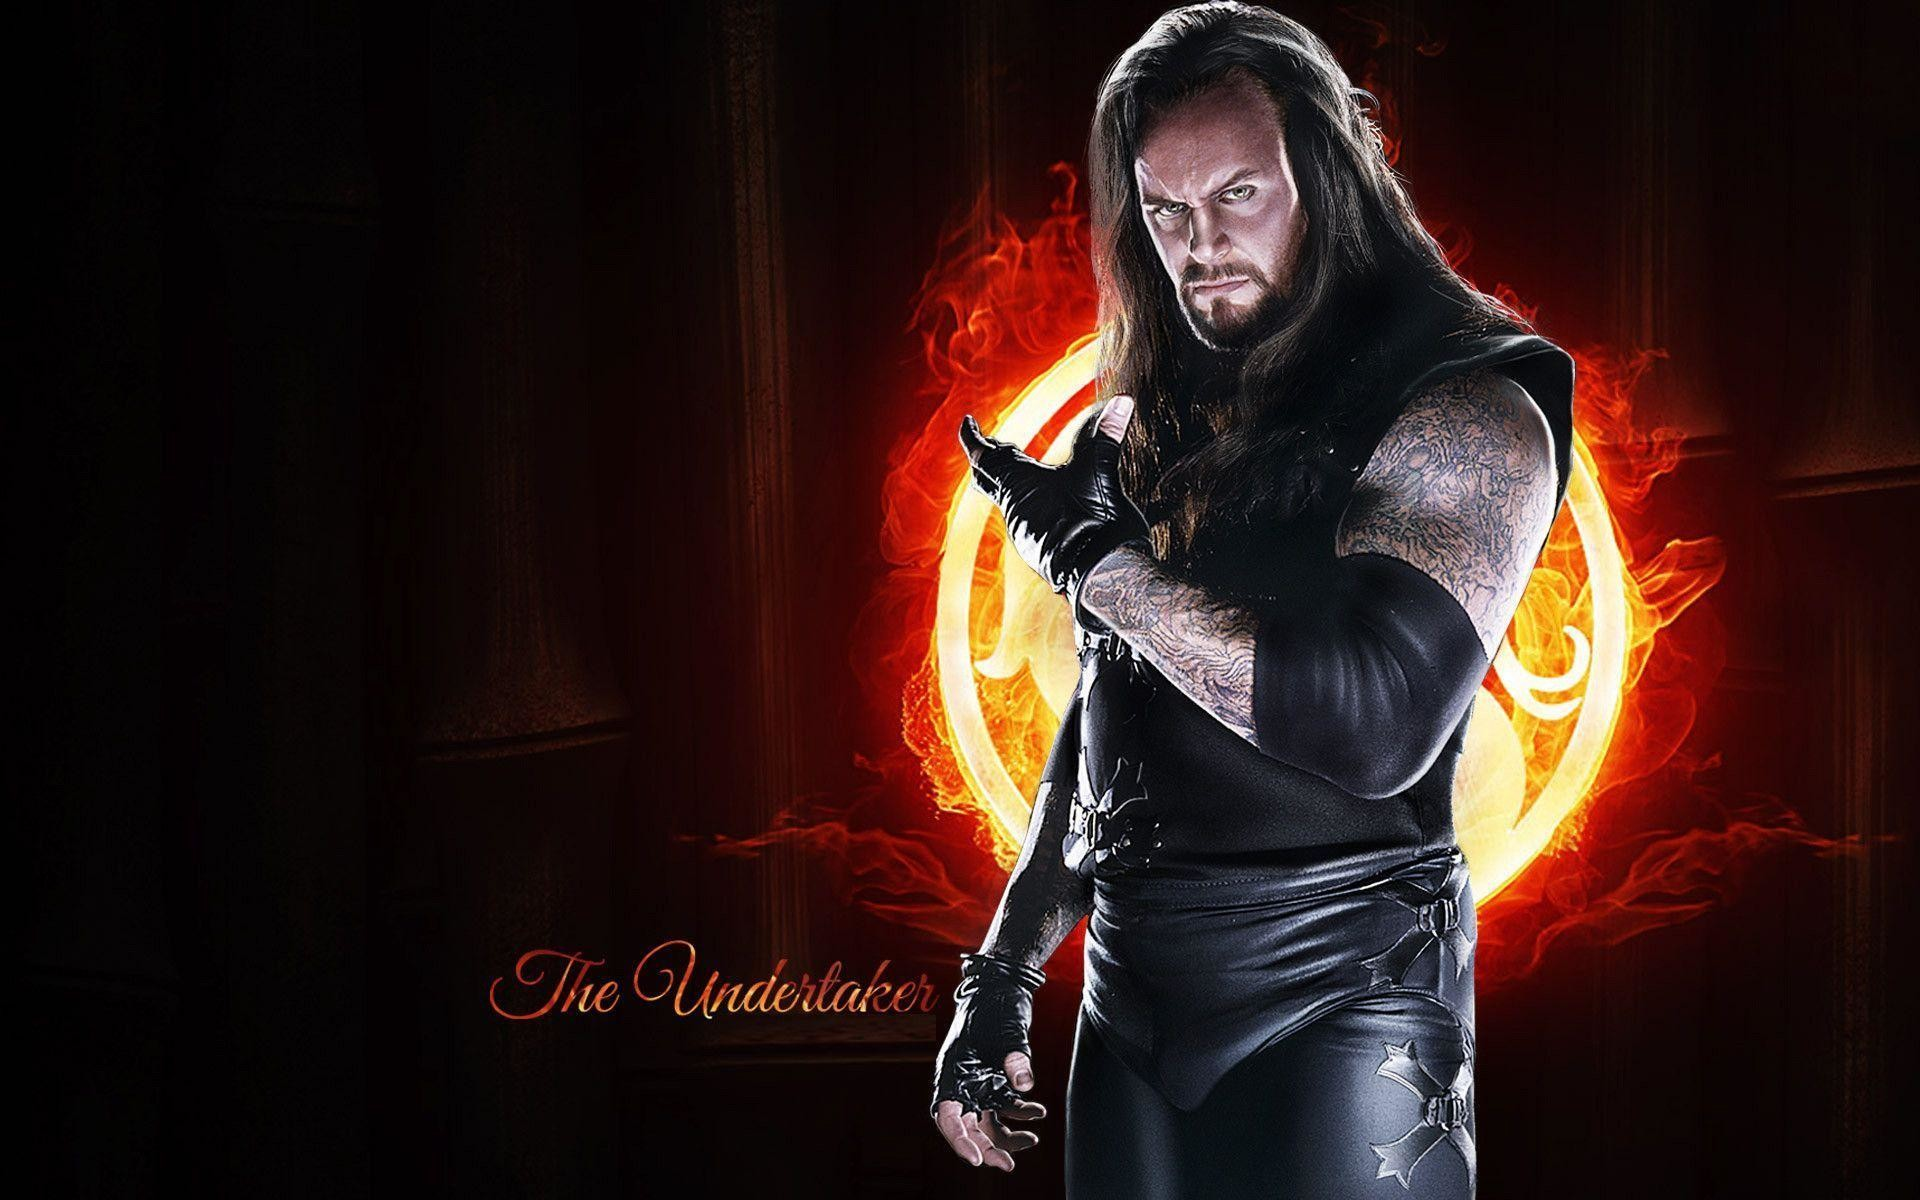 1920x1200 The Undertaker is Back Wallpaper - Dazzling Wallpaper